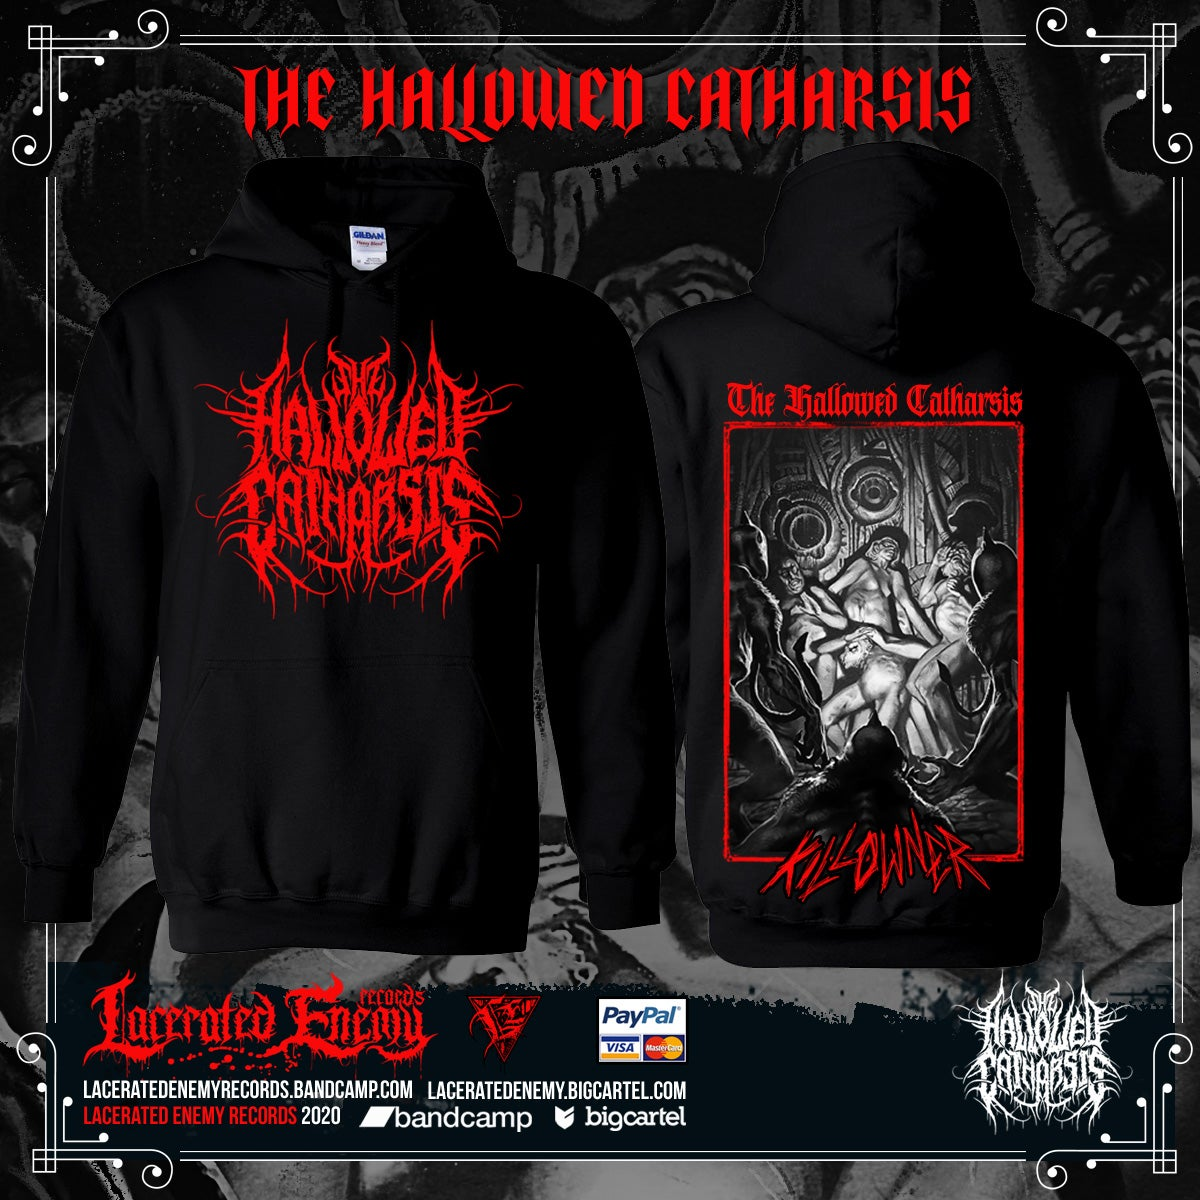 THE HALLOWED CATHARSIS - Killowner RED hoodie